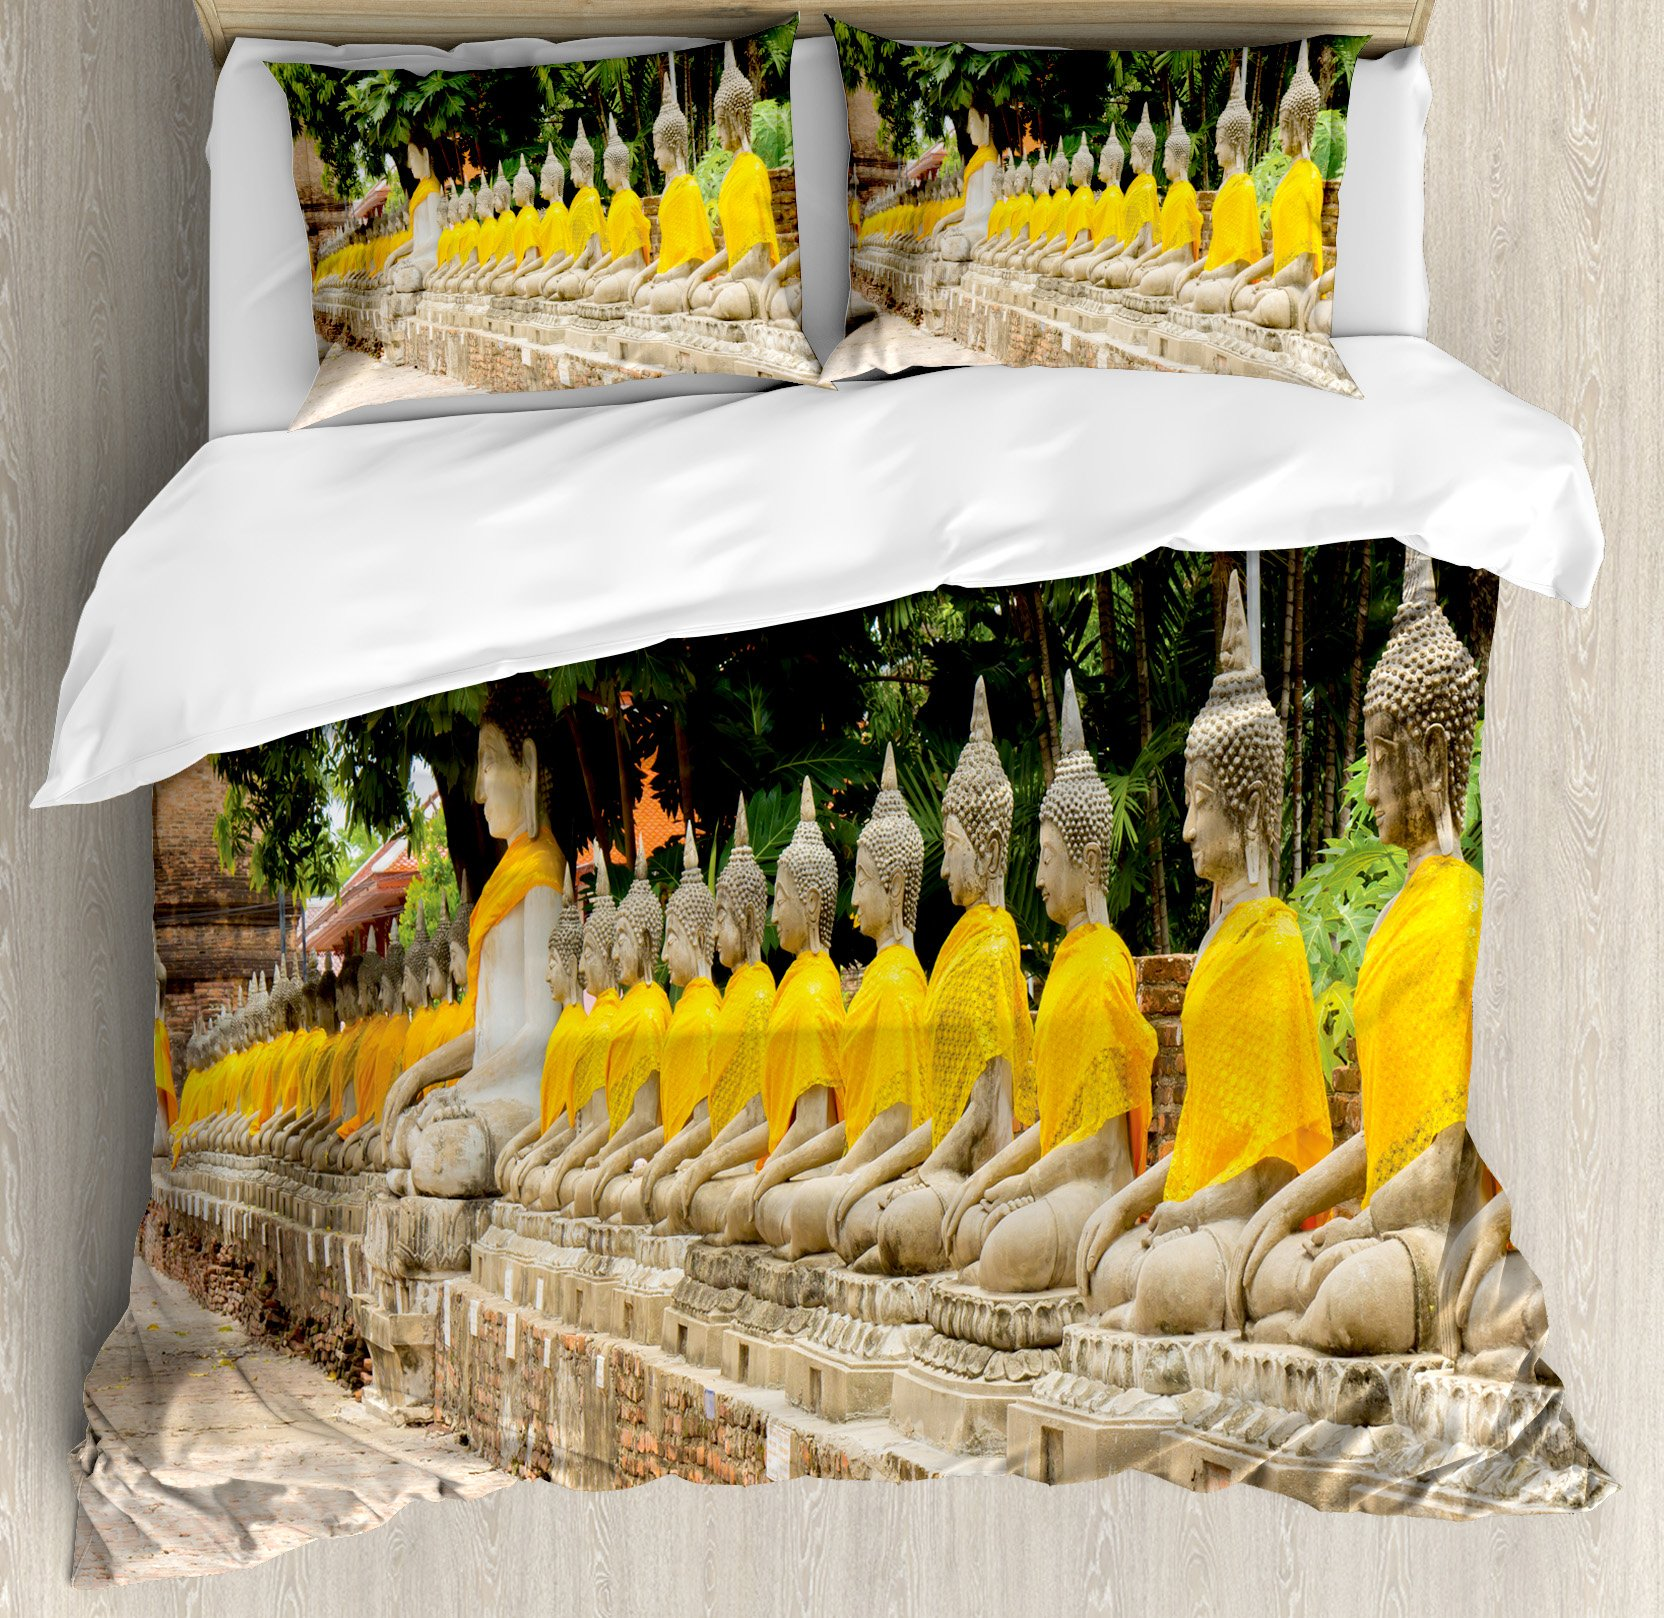 Asian Decor King Size Duvet Cover Set by Ambesonne, Picture of Religious Statues in Thailand Traditional Thai Home Decor, Decorative 3 Piece Bedding Set with 2 Pillow Shams, Cream Yellow Green by Ambesonne